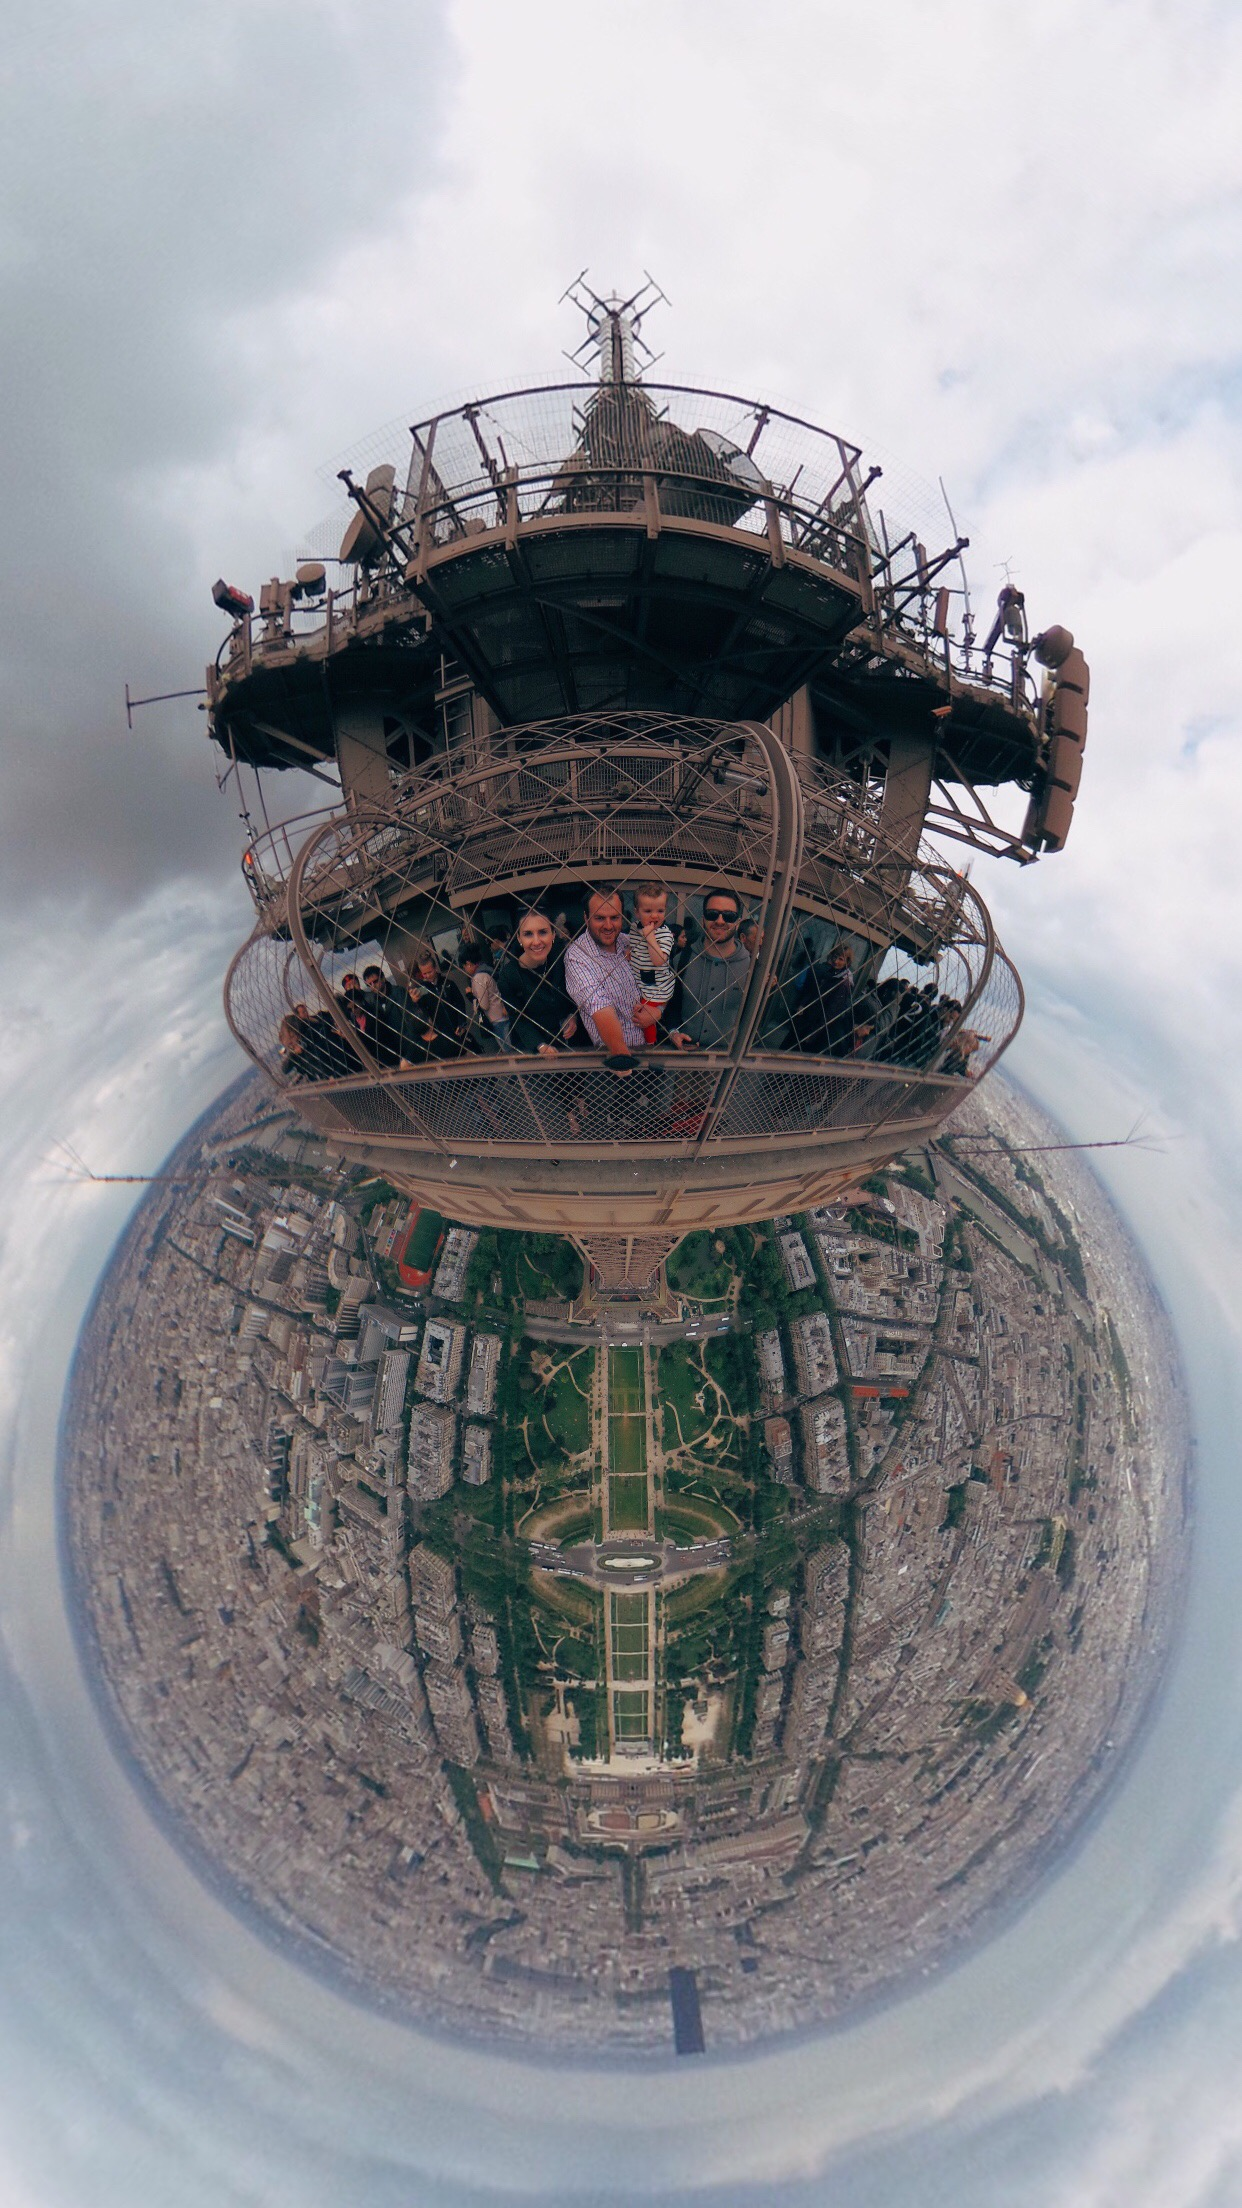 Steps To Eiffel Tower Top : Virtual reality ° photo from top of eiffel tower